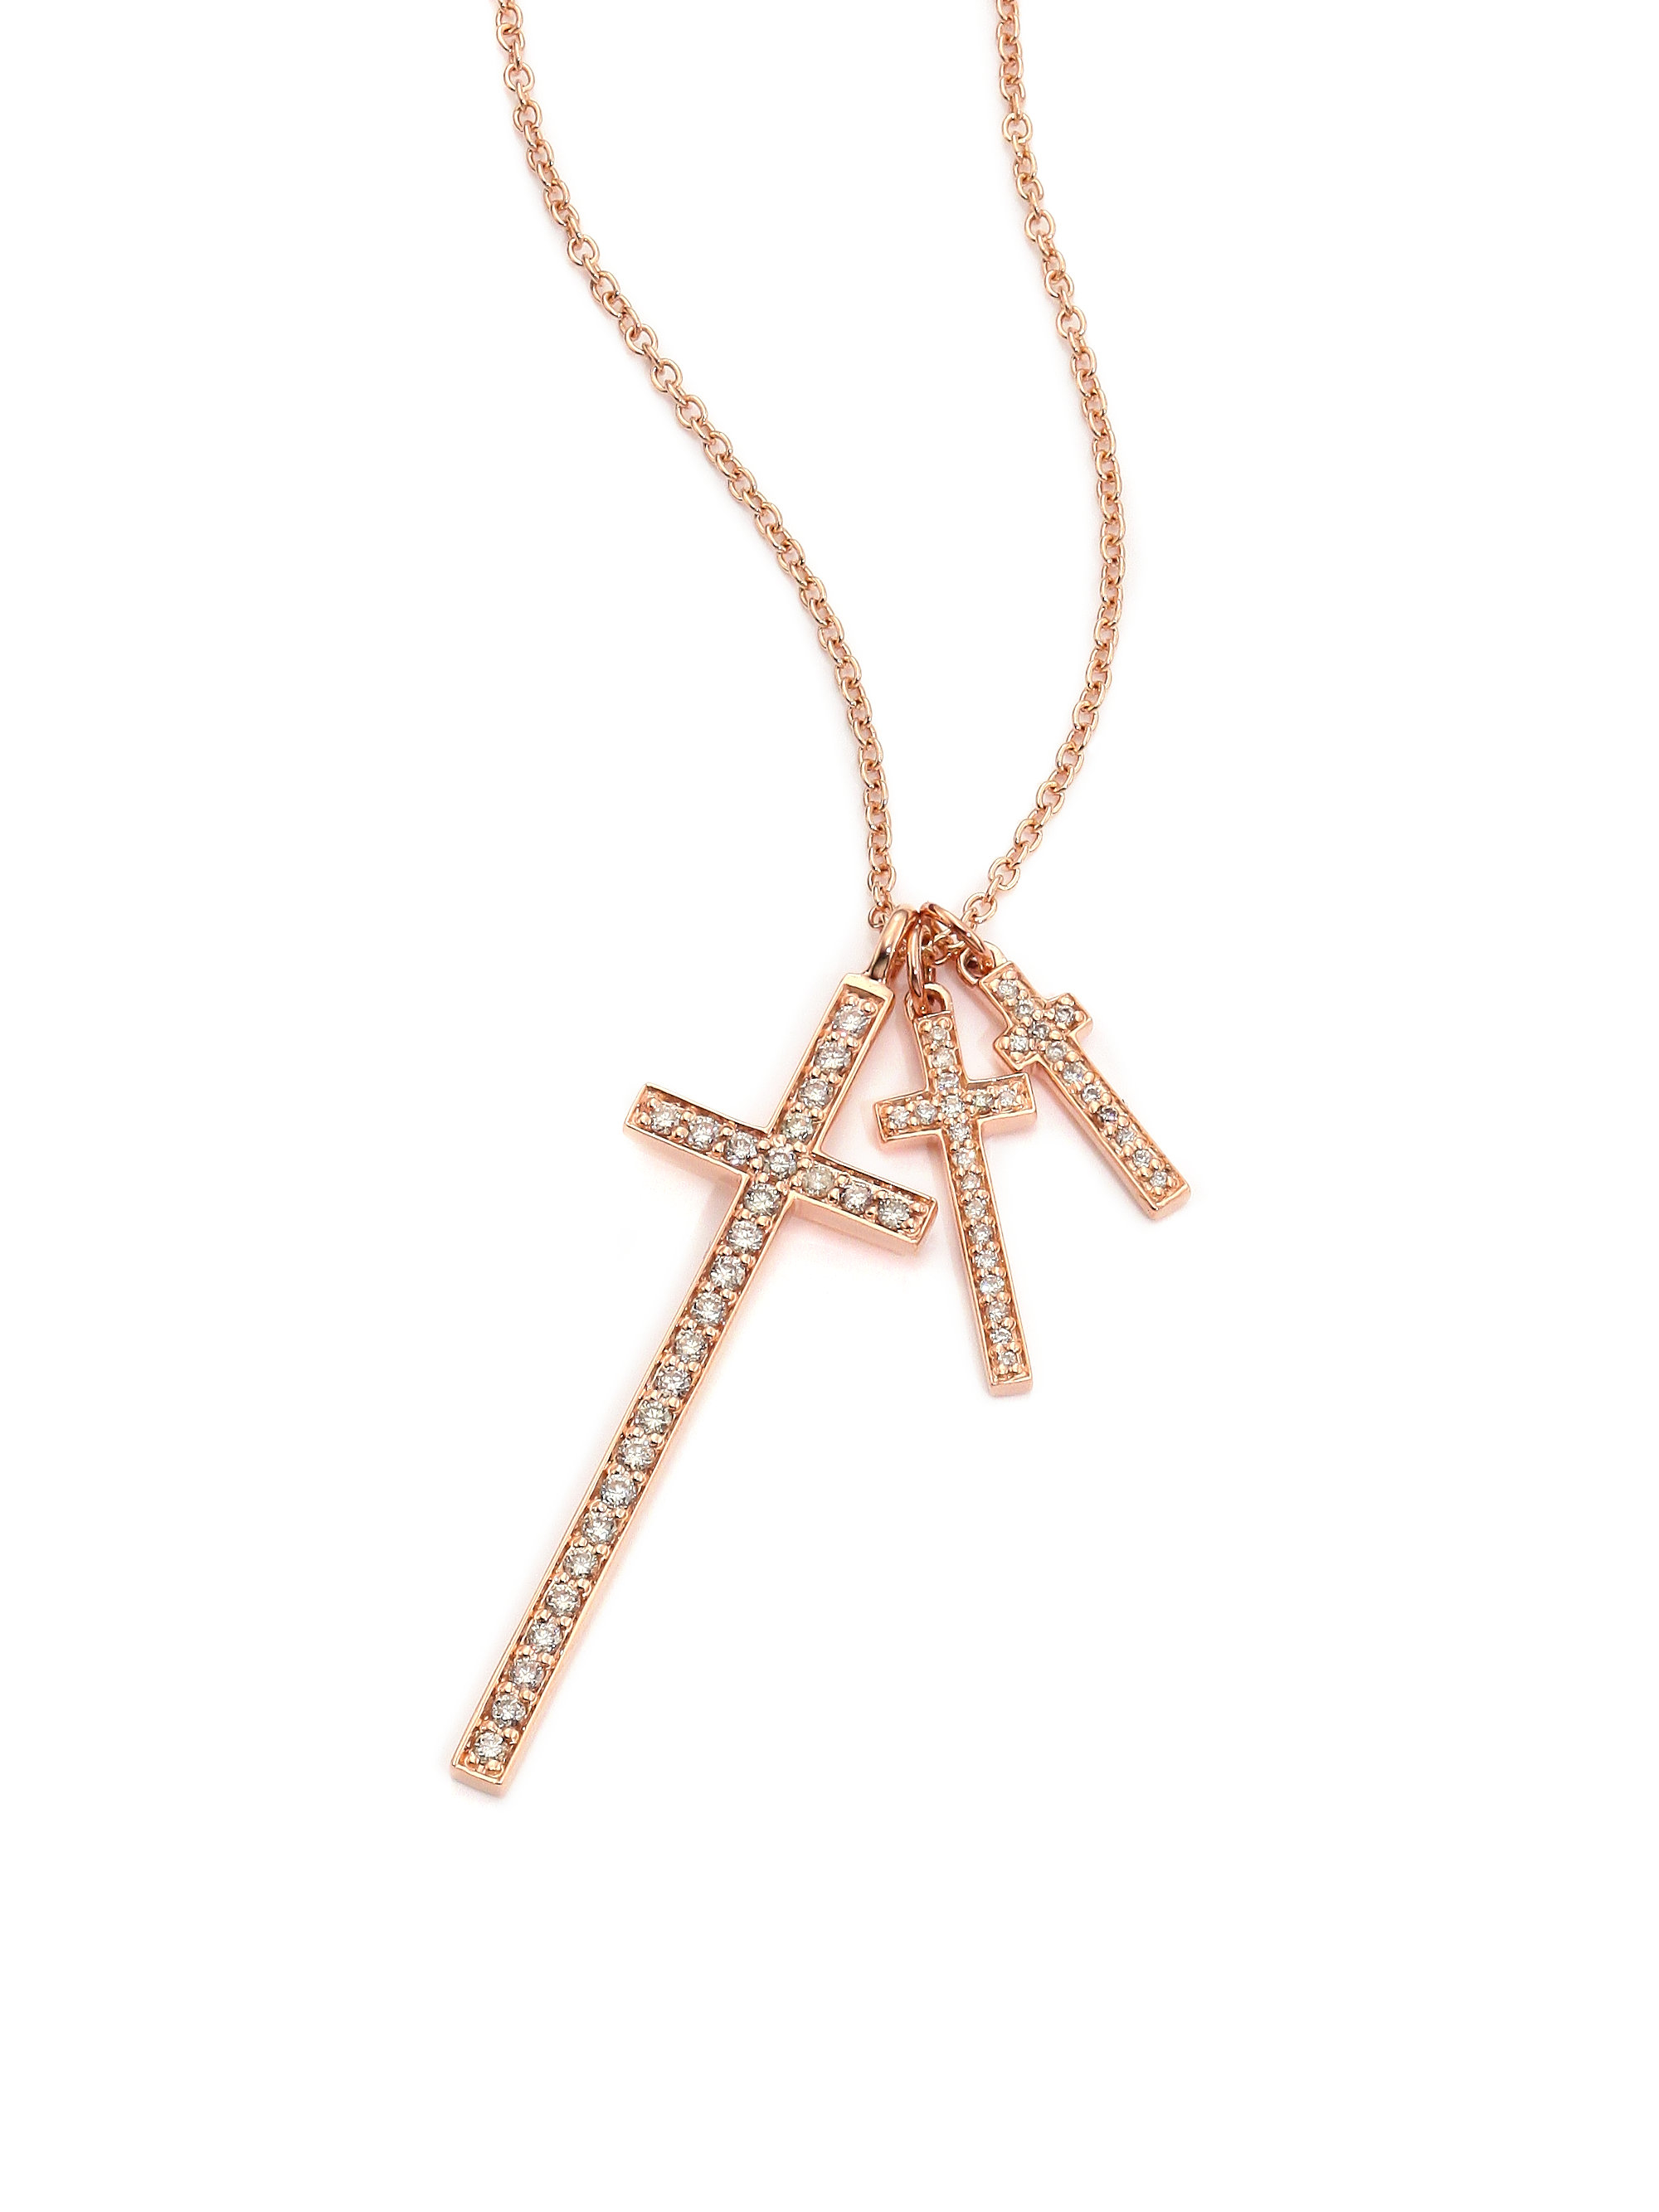 Lj cross Champagne Diamond & 14k Rose Gold Cross Pendant Necklace